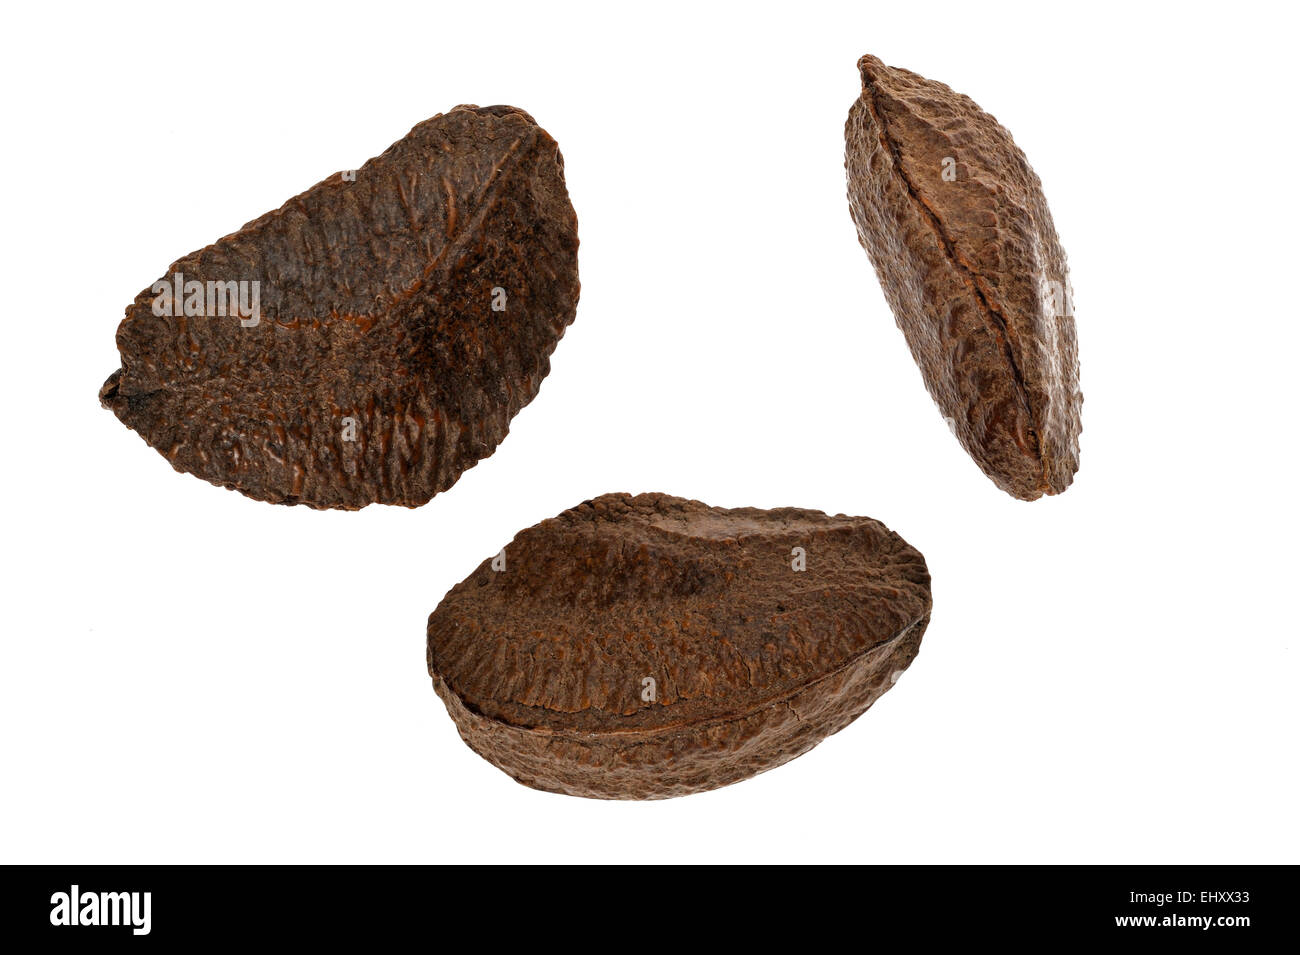 Excelsa Plant Stock Photos & Excelsa Plant Stock Images - Alamy